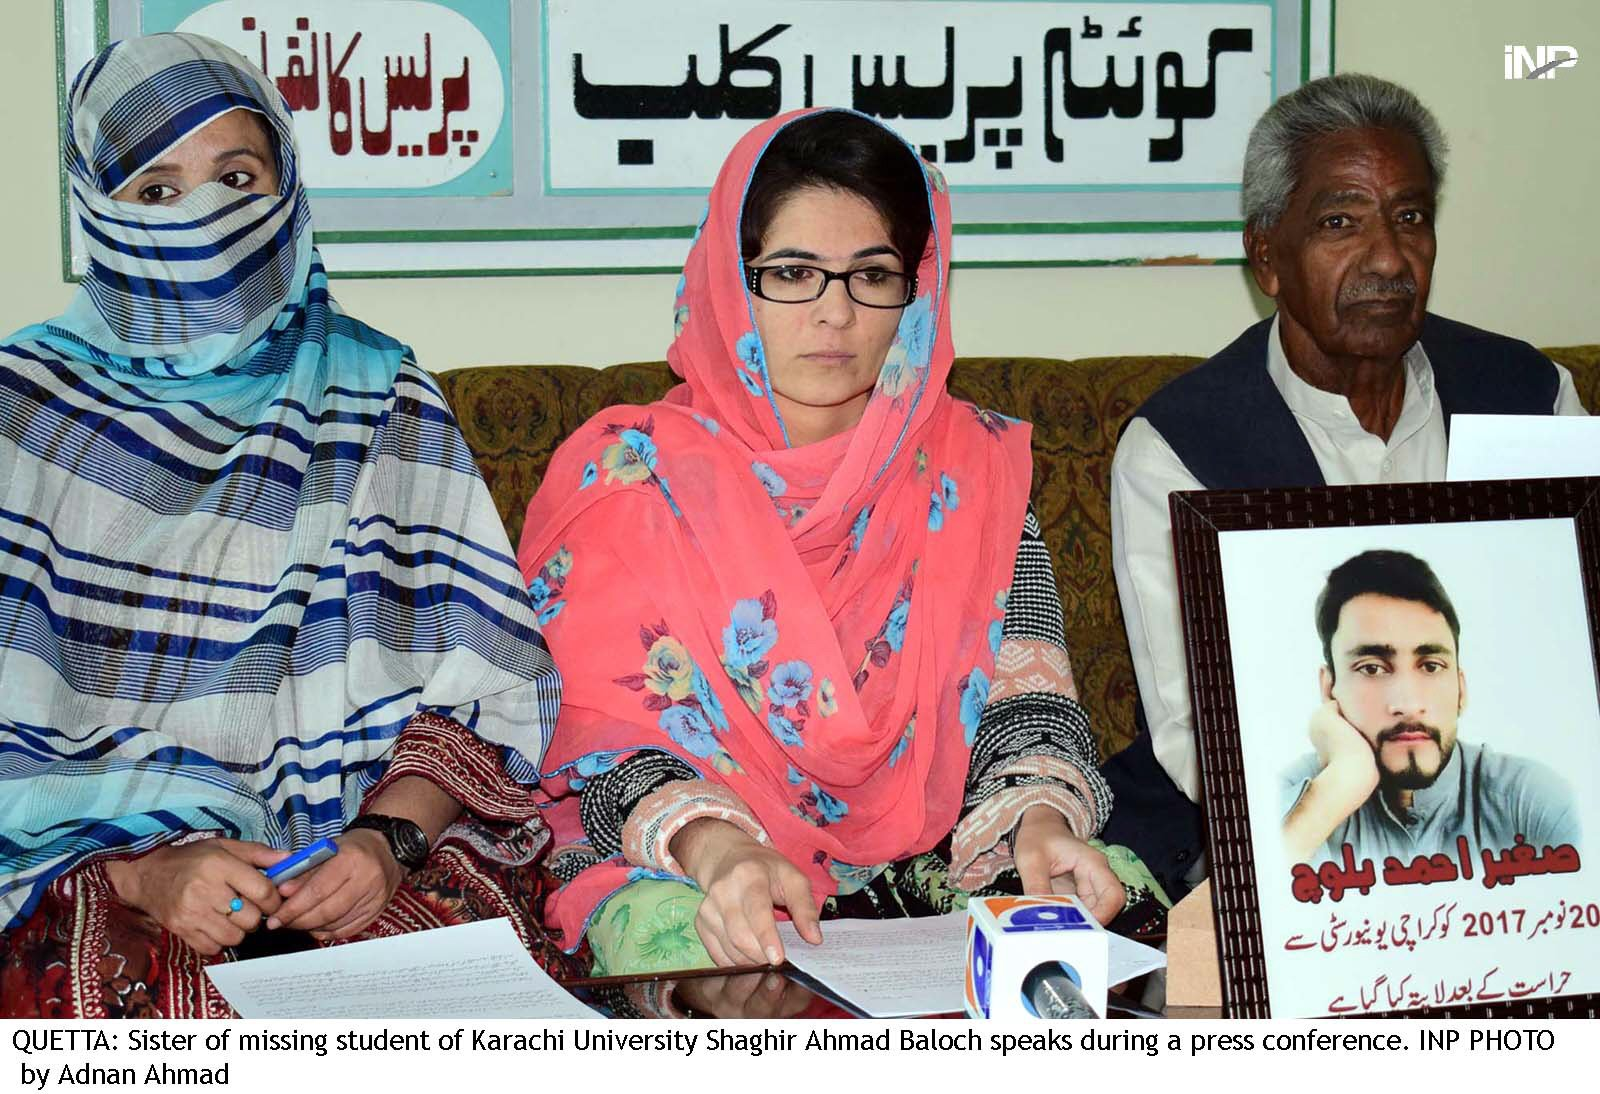 Hamida Baloch addressing a press conference in Quetta. PHOTO: INP